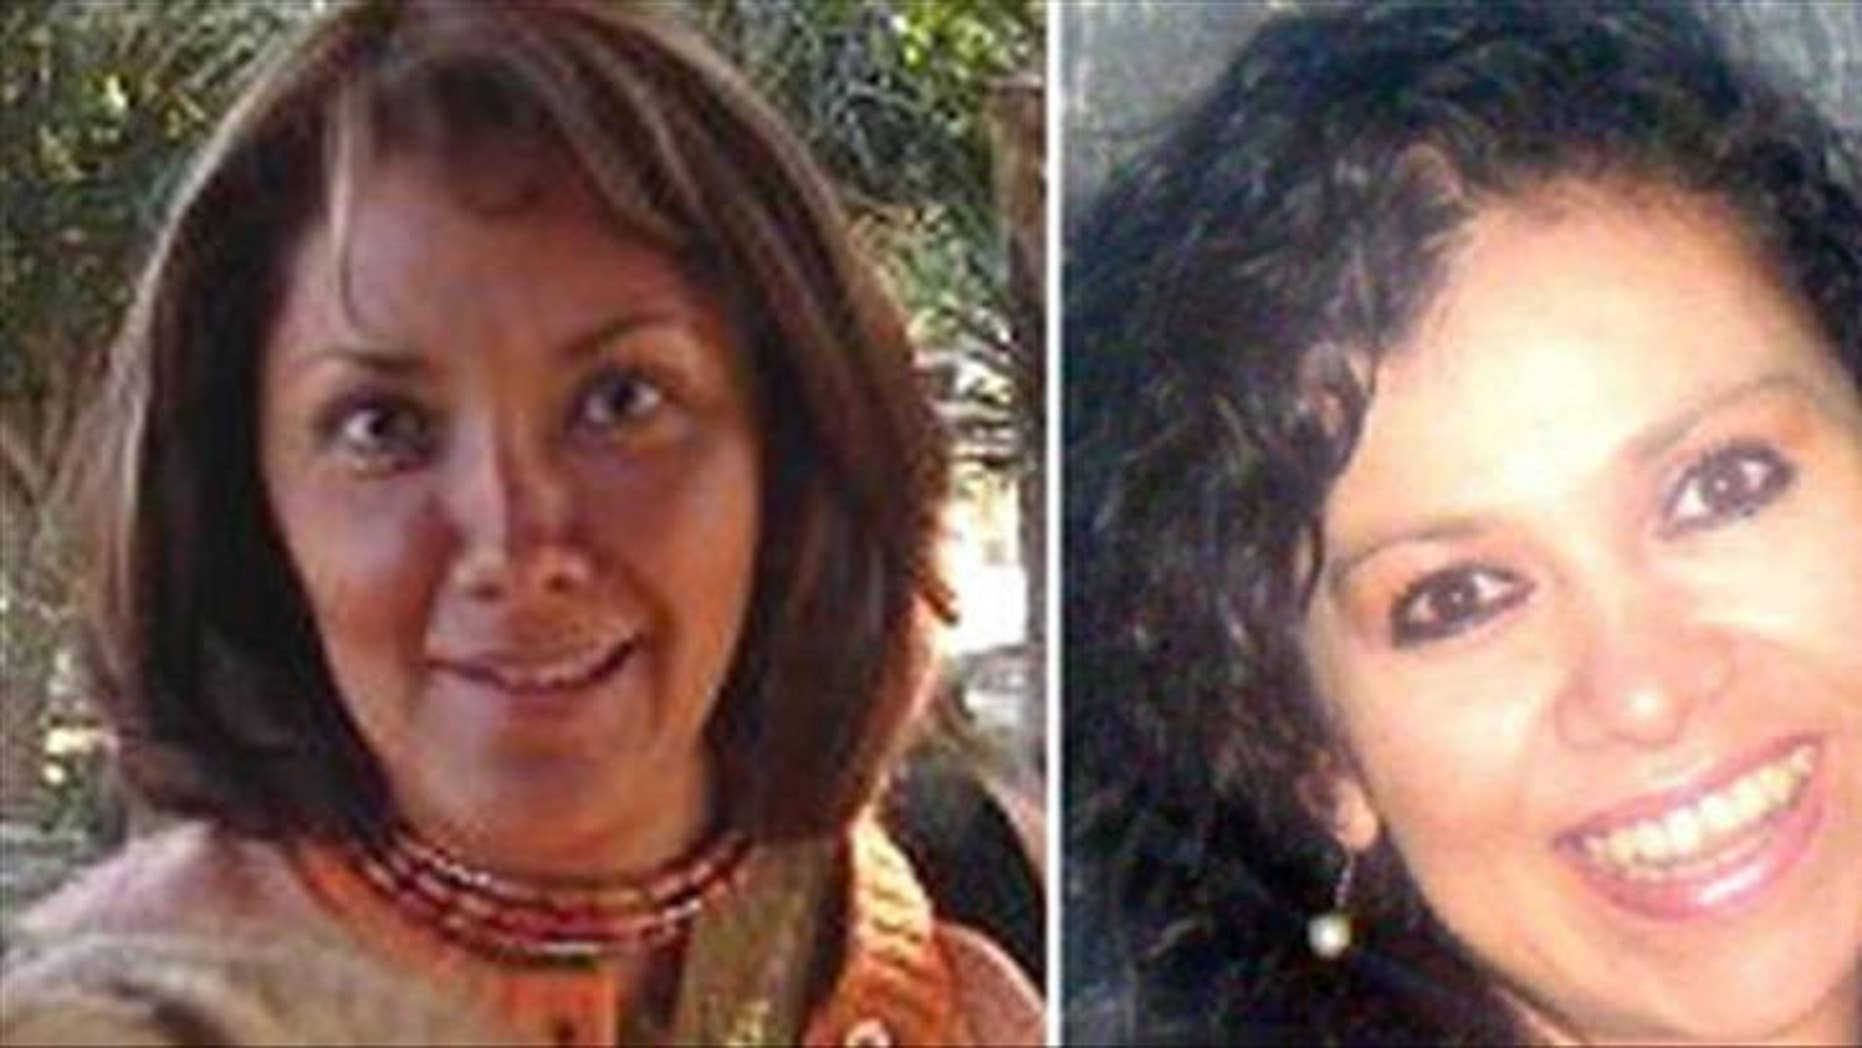 A photograph released Friday by muckraking Mexican news magazine Contralinea of journalists Rocio Gonzalez Trapaga (left) and Marcela Yarce Viveros, who were found slain Thursday at a park on this capital's southeast side.